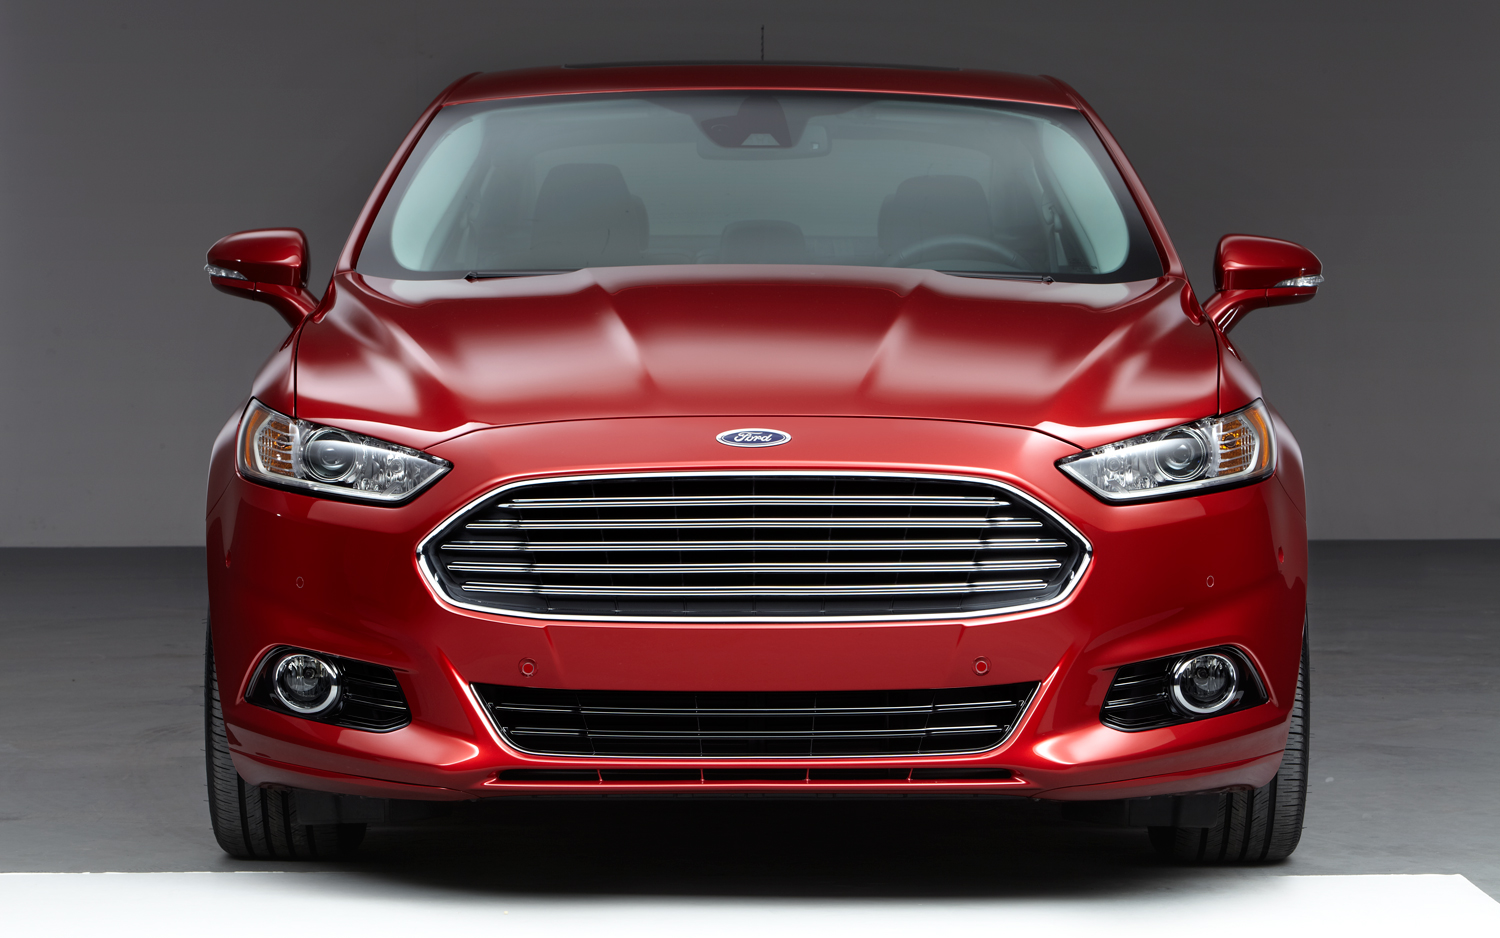 ford fusion images #9